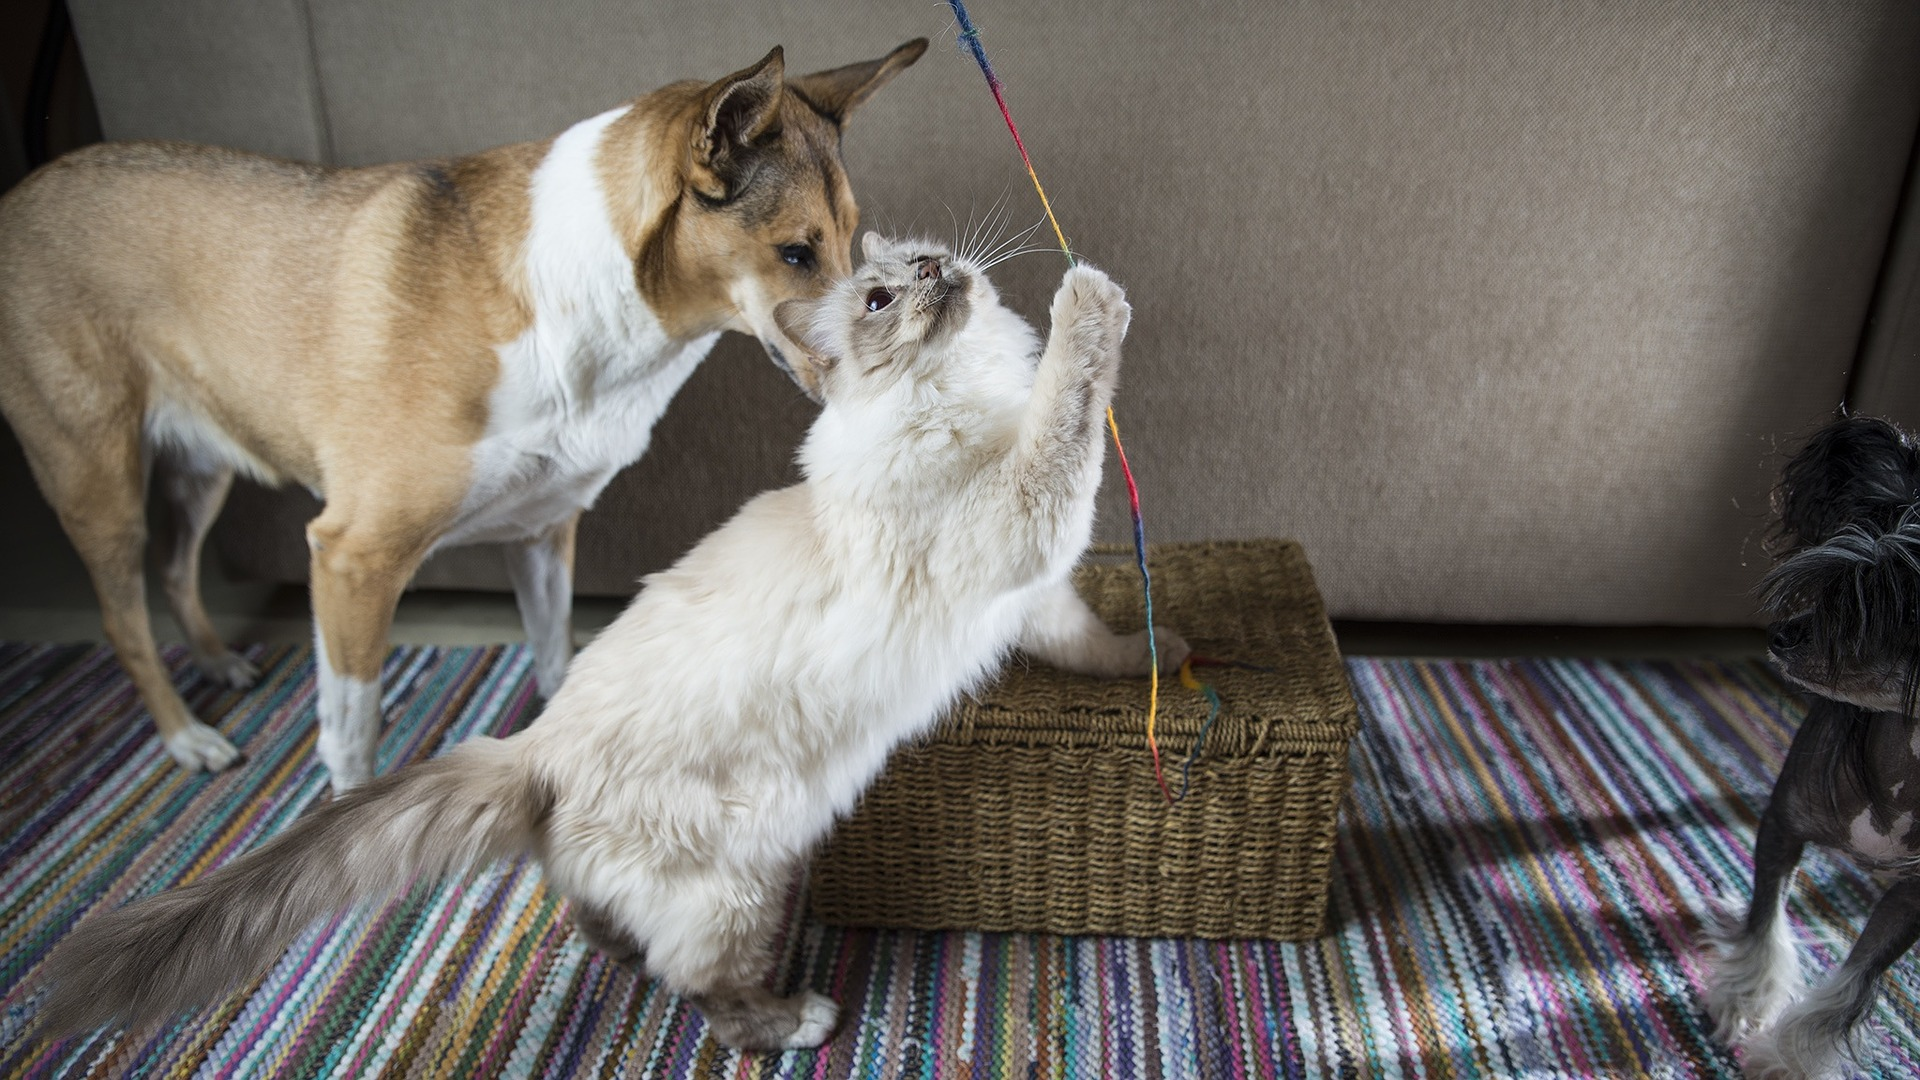 Keep your cat and dog entertained on Bonfire ngiht